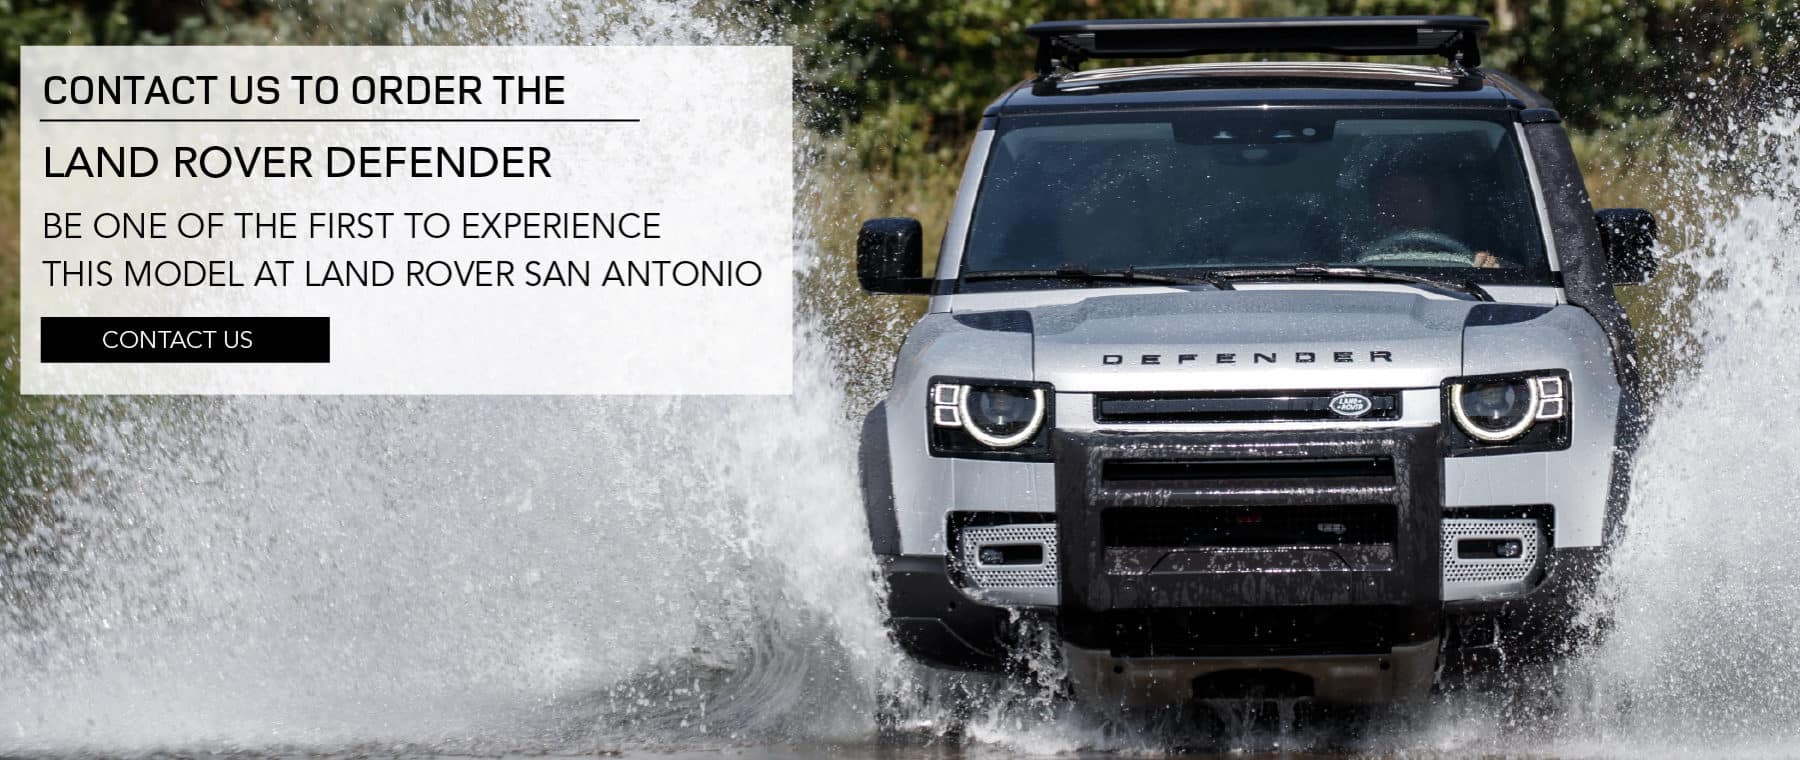 CONTACT US TO ORDER THE LAND ROVER DEFENDER. BE ONE OF THE FIRST TO EXPERIENCE THIS MODEL AT LAND ROVER SAN ANTONIO. CONTACT US. SILVER LAND ROVER DEFENDER DRIVING INTO WATER.